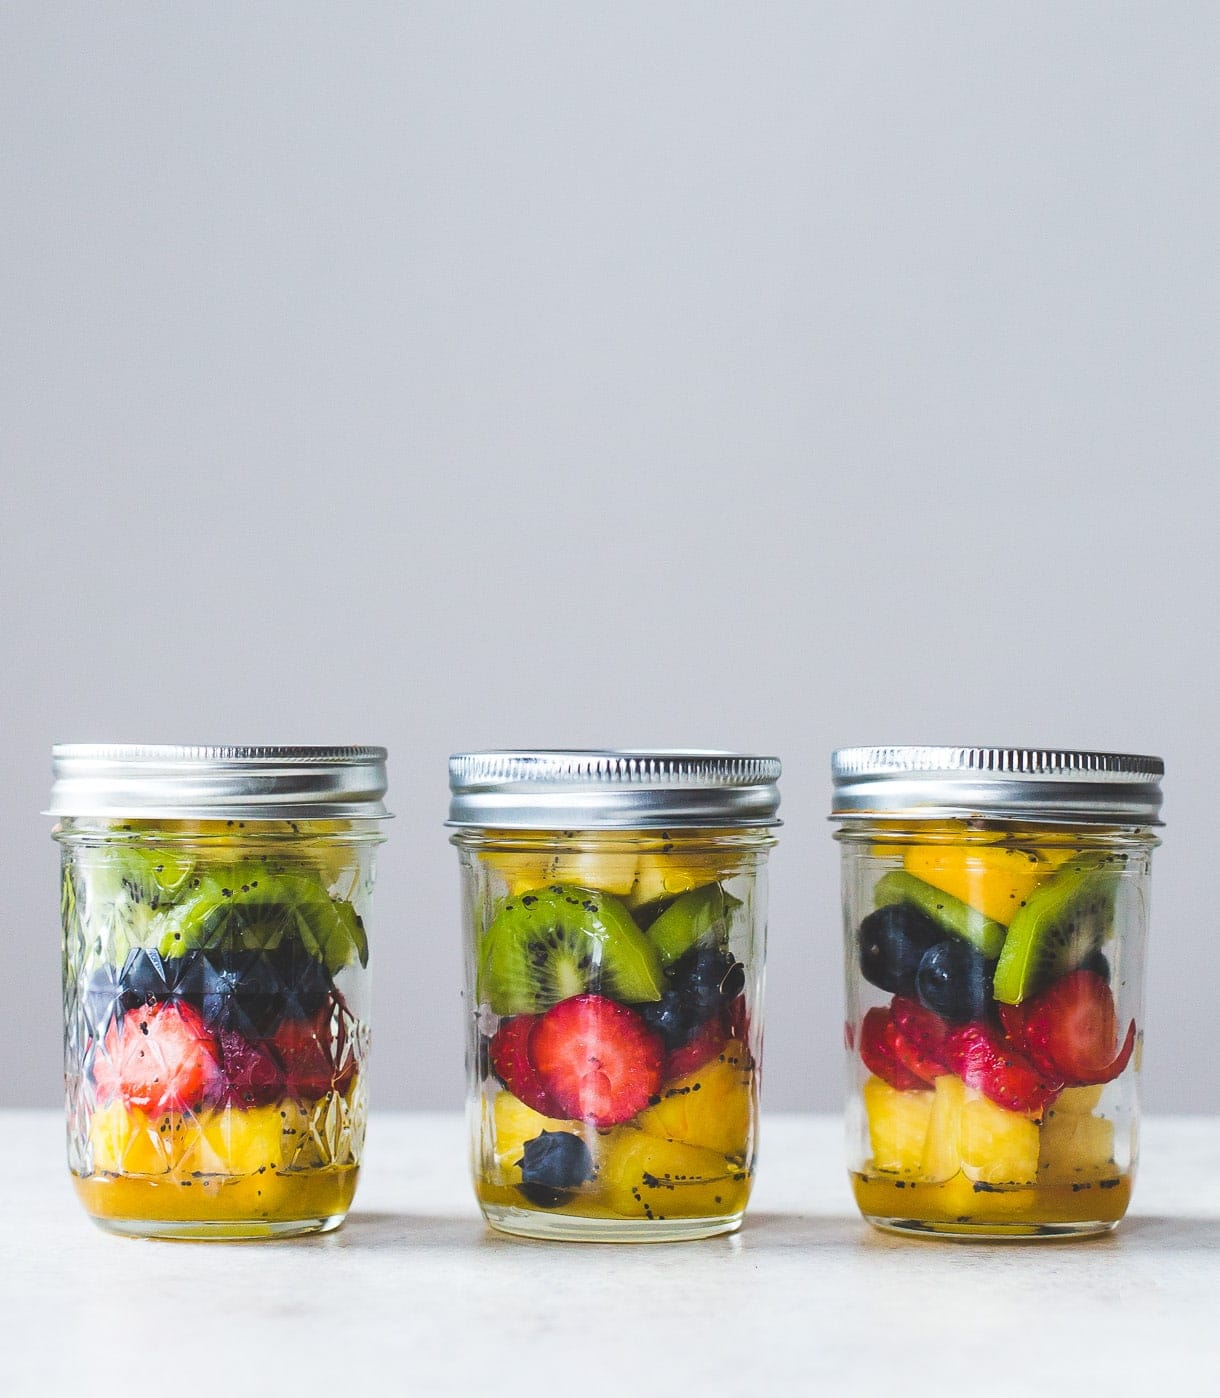 Honey Poppyseed Marinated Fruit Jars: the perfect make-ahead paleo snack in a mason jar, that can be stored in the refrigerator for up to 3 days.